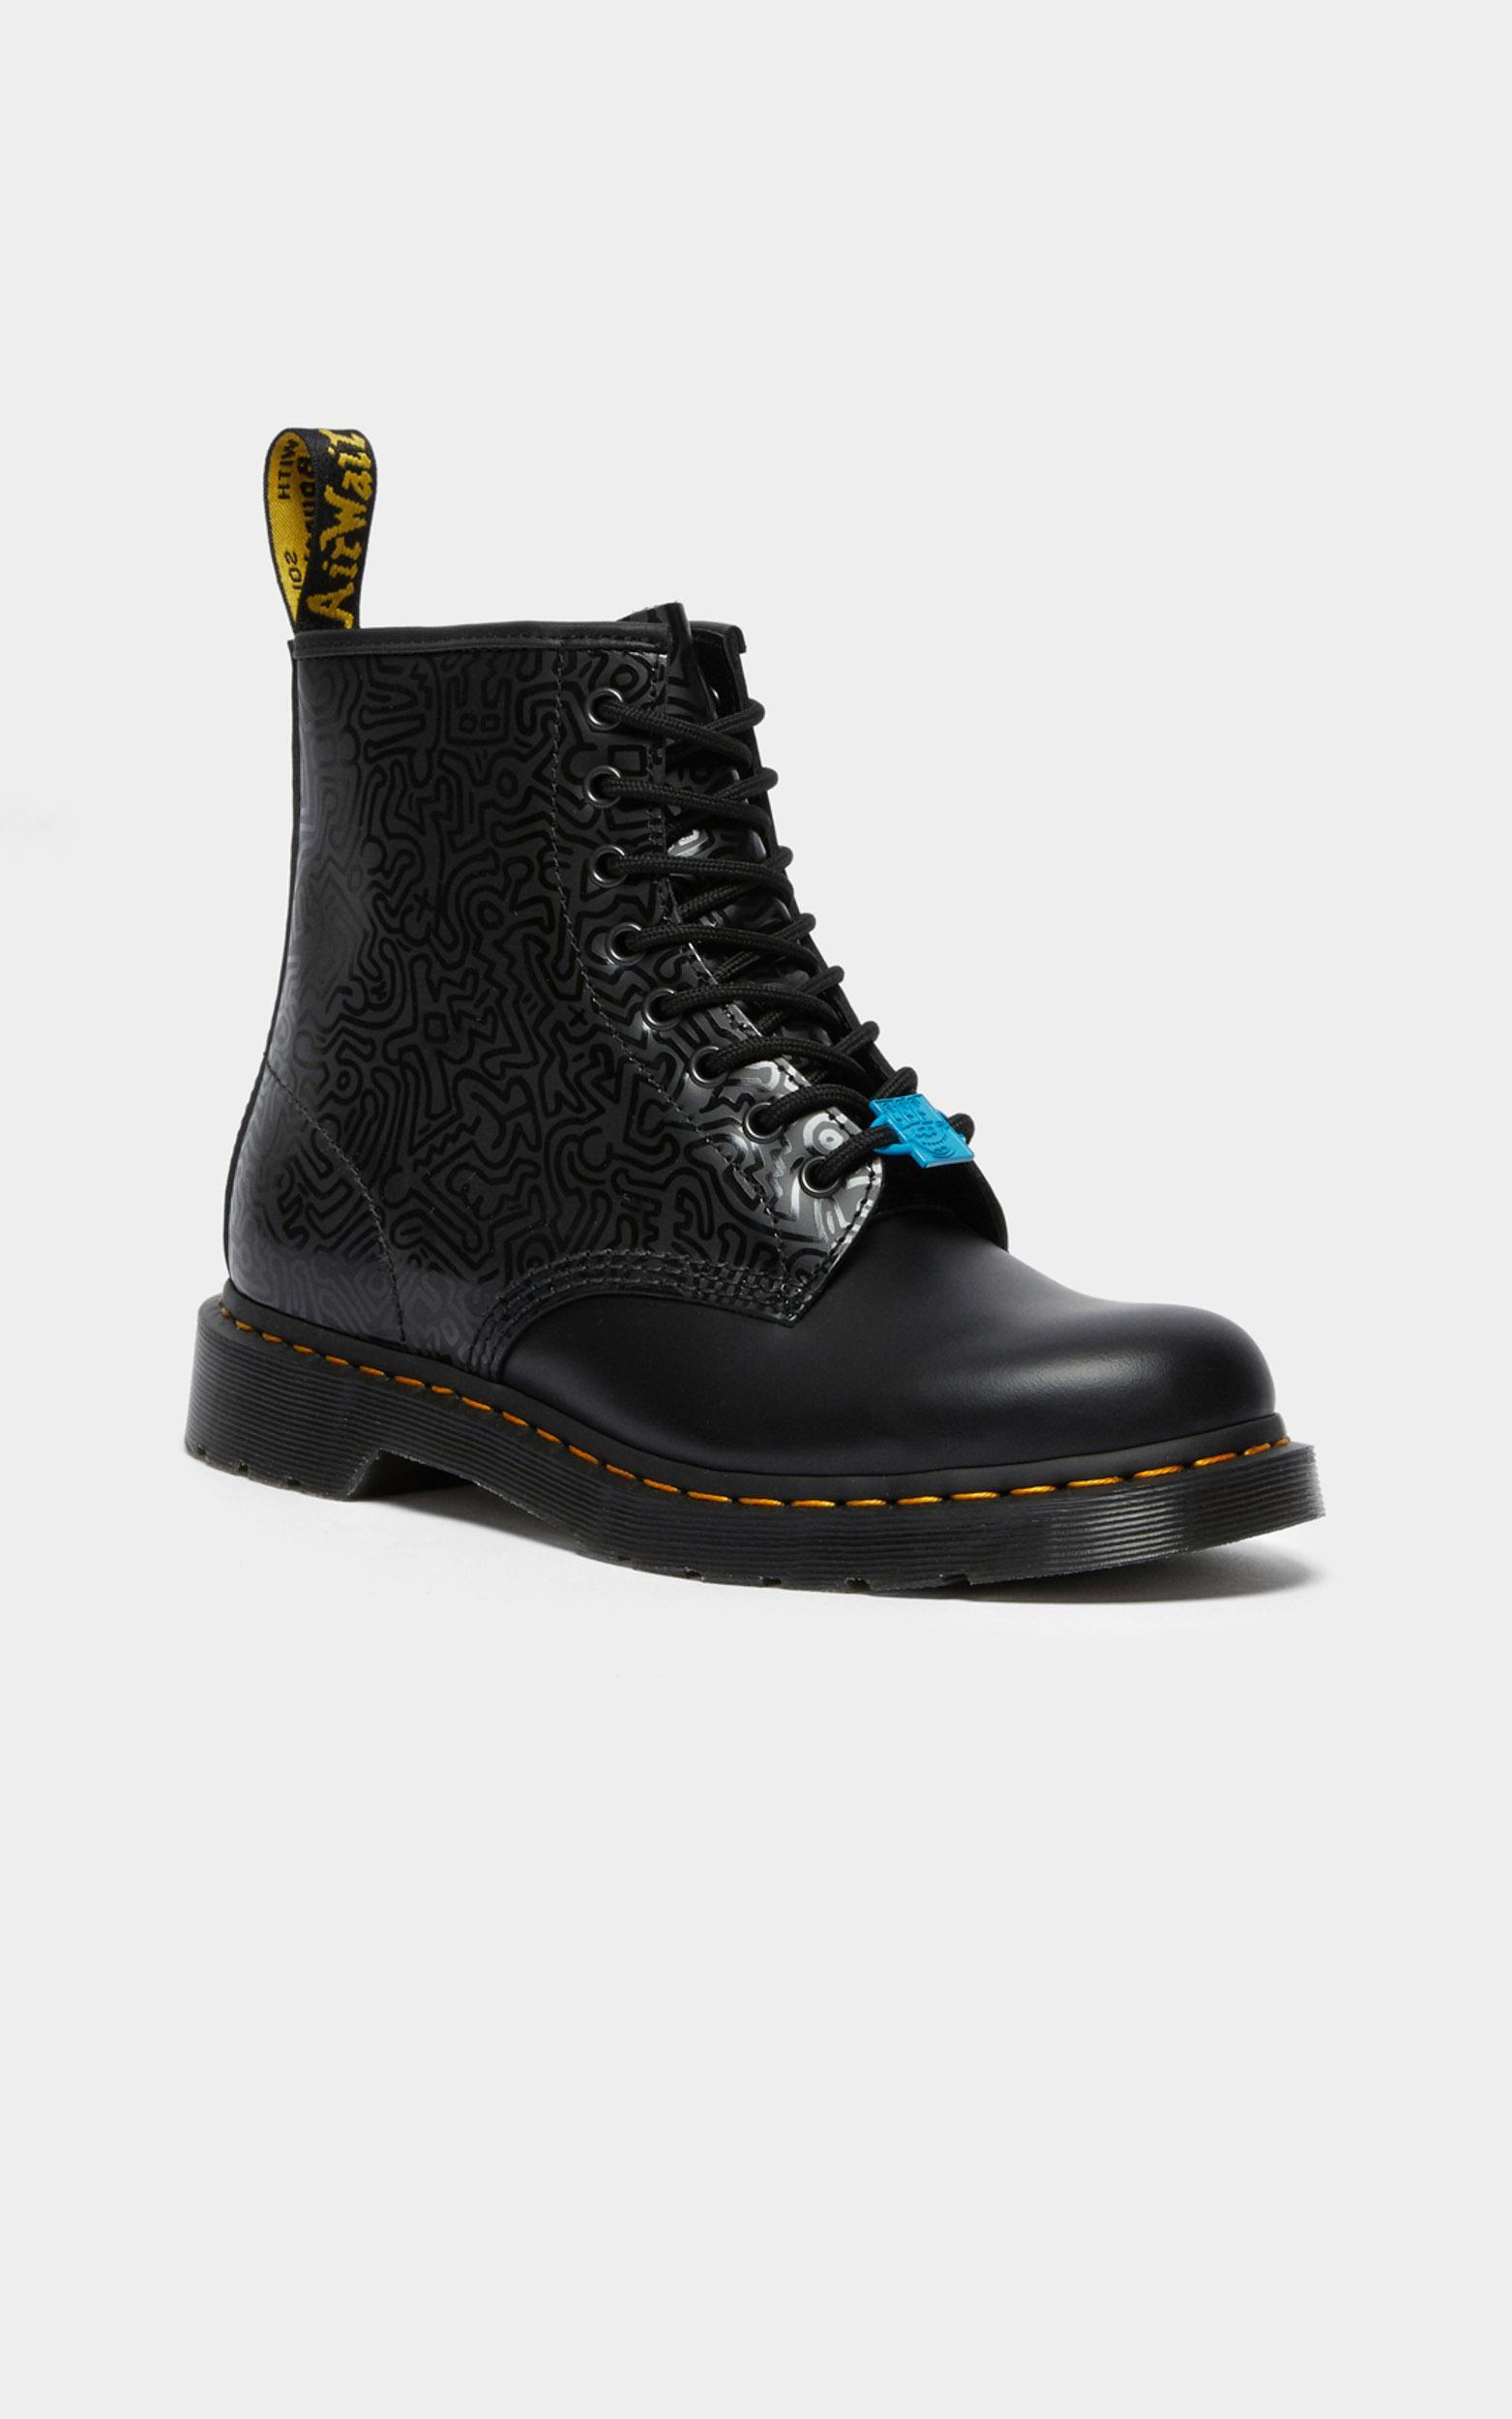 Dr. Martens - 1460 Keith Haring 8 Eye Boot in Black Smooth, Black, hi-res image number null